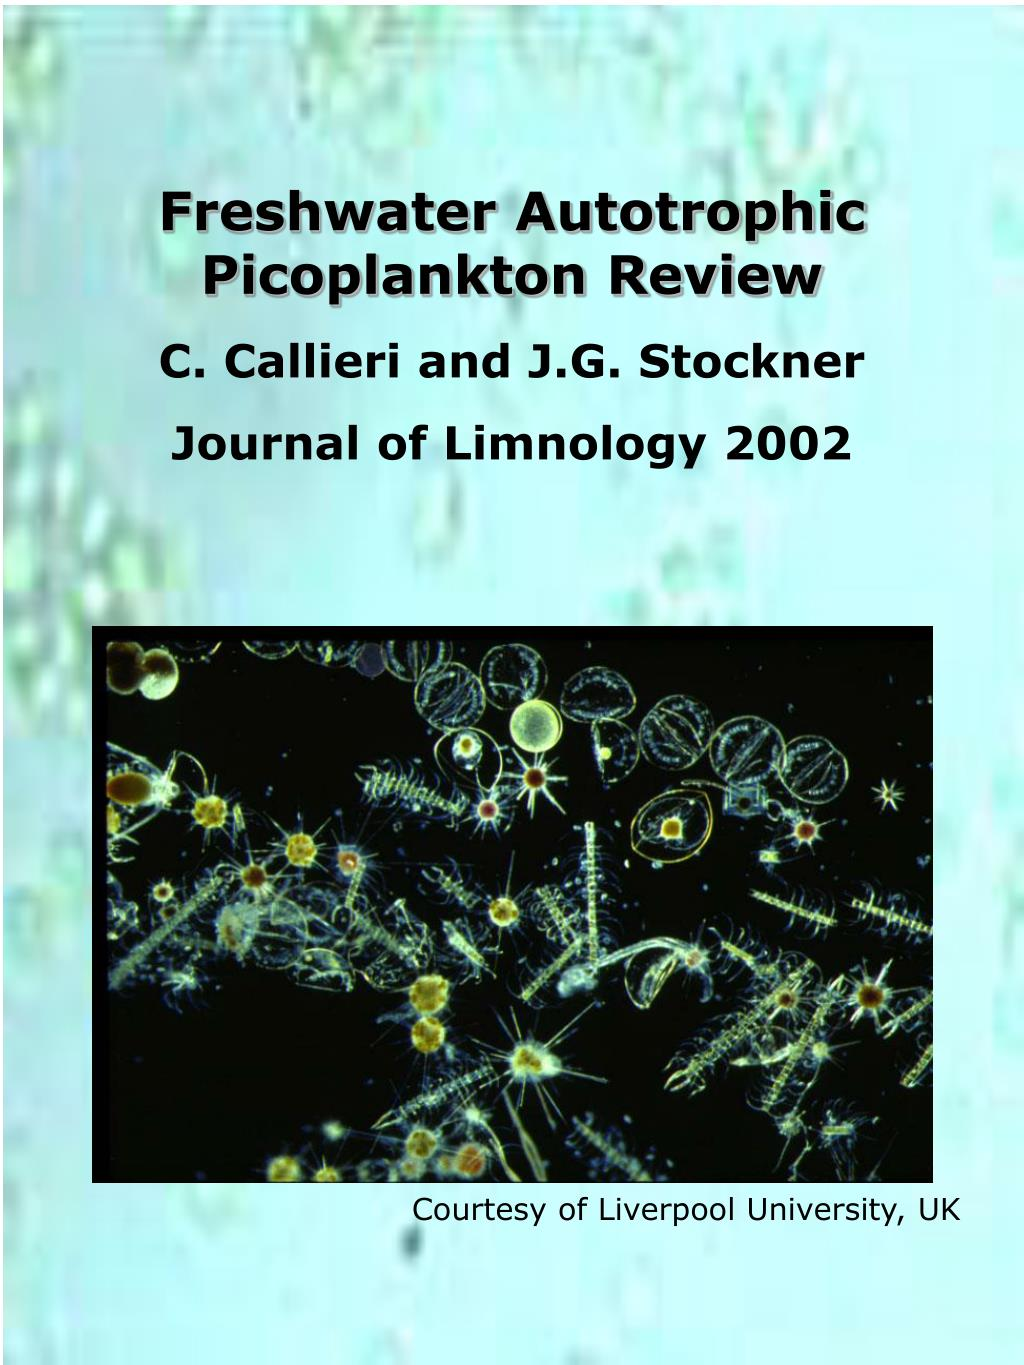 Freshwater Autotrophic Picoplankton Review